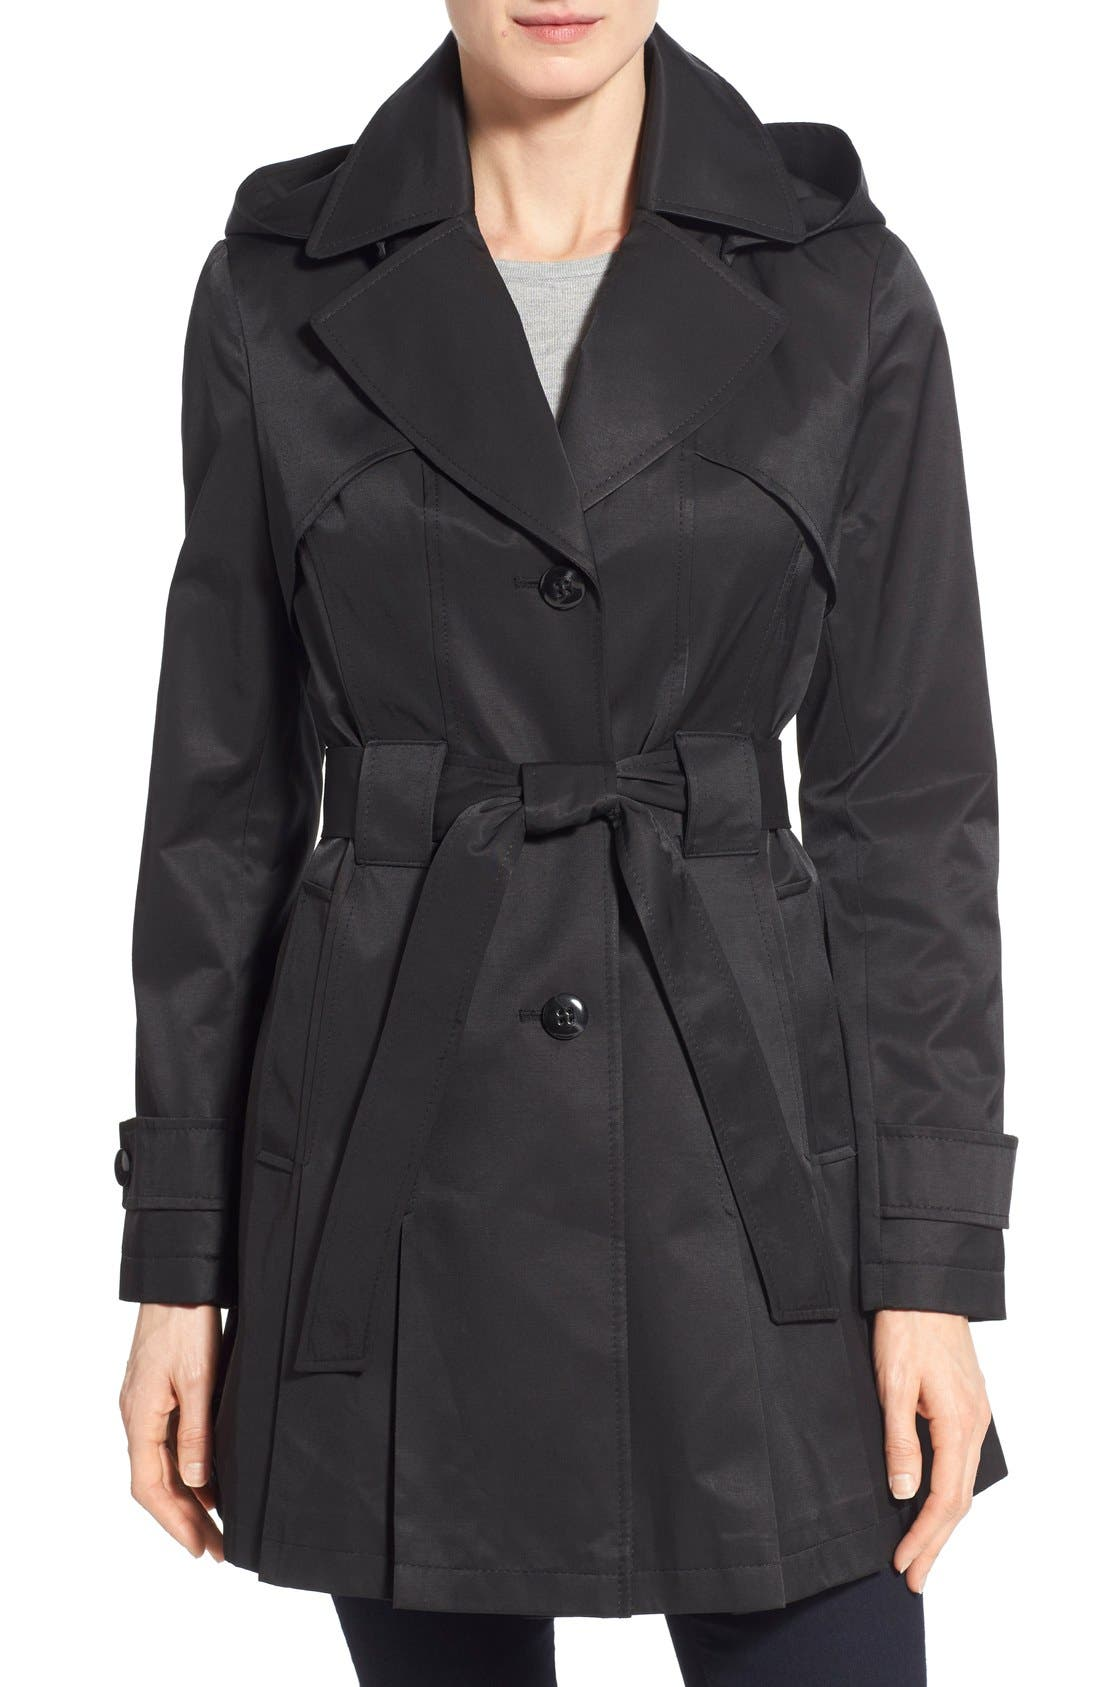 'Scarpa' Hooded Single Breasted Trench Coat,                             Main thumbnail 3, color,